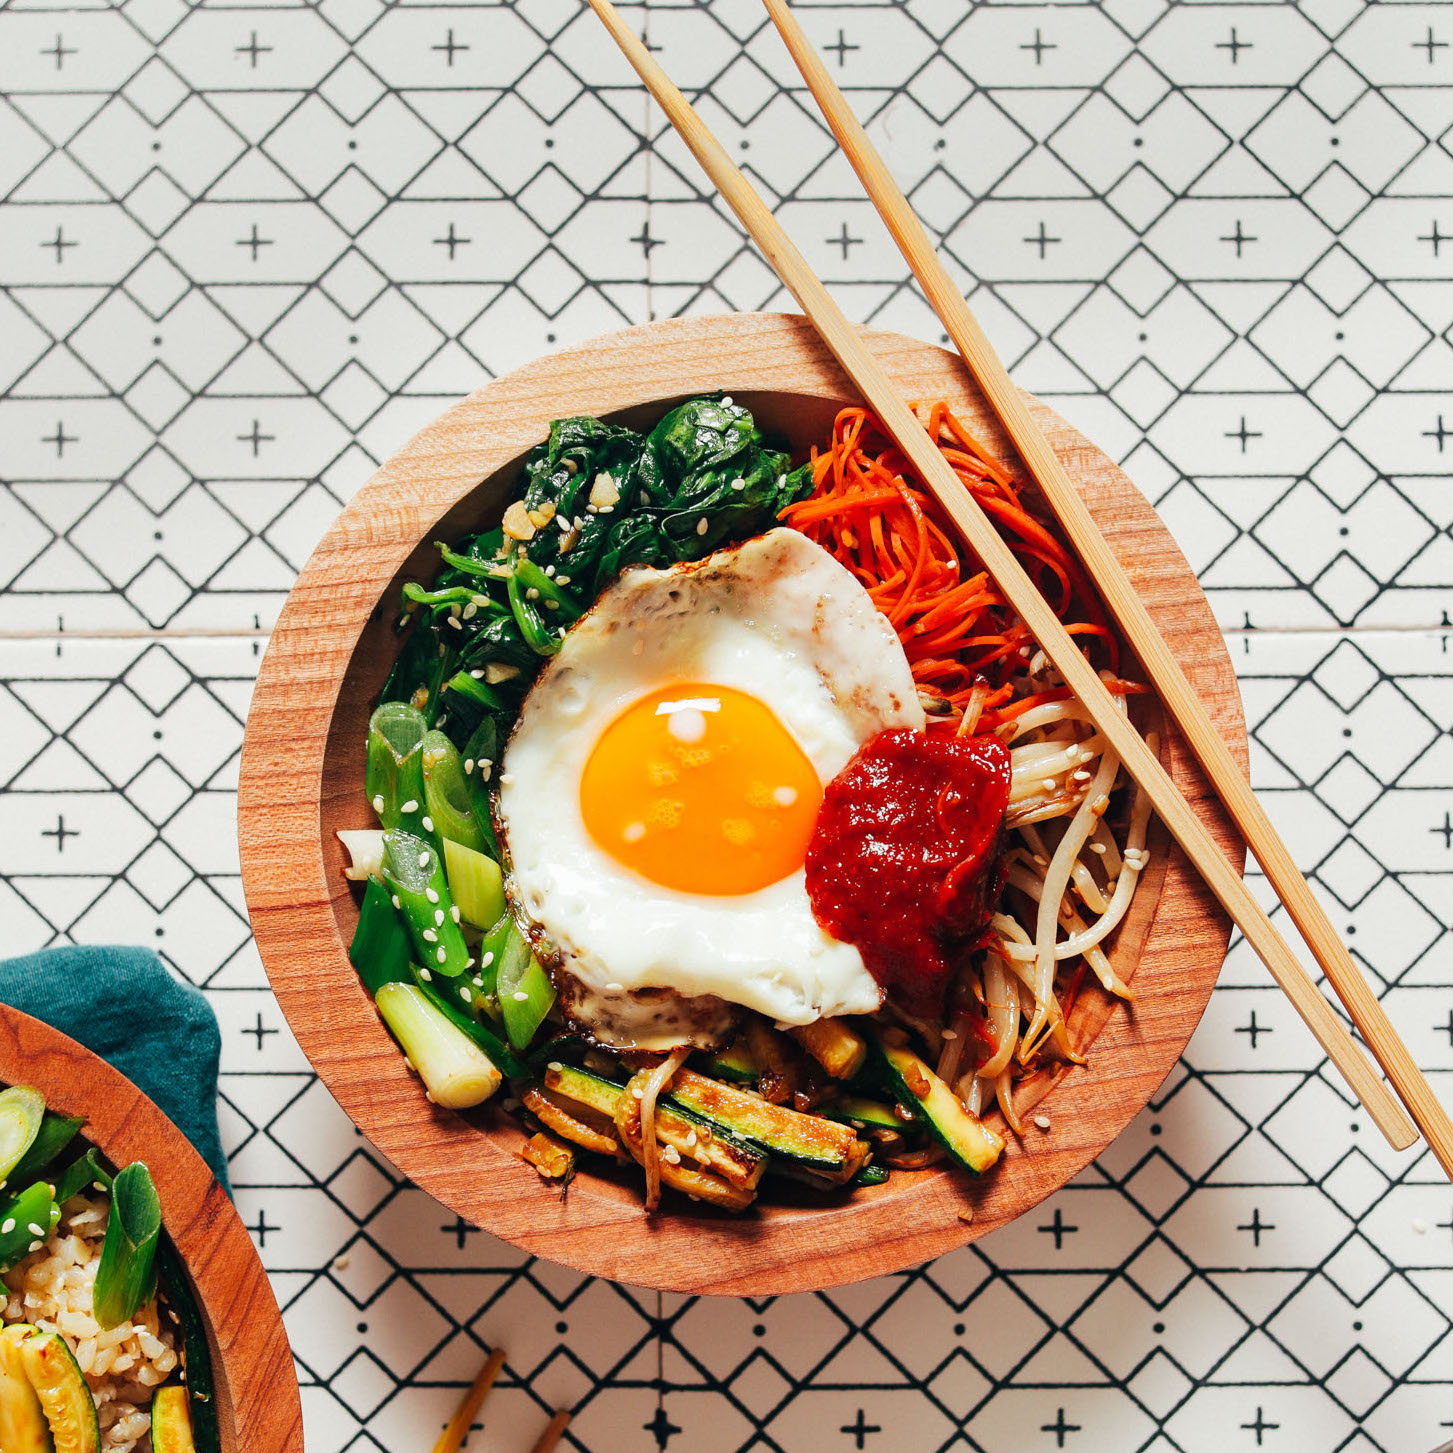 Chopsticks resting on a bowl of Bibimbap made with brown rice and lots of veggies